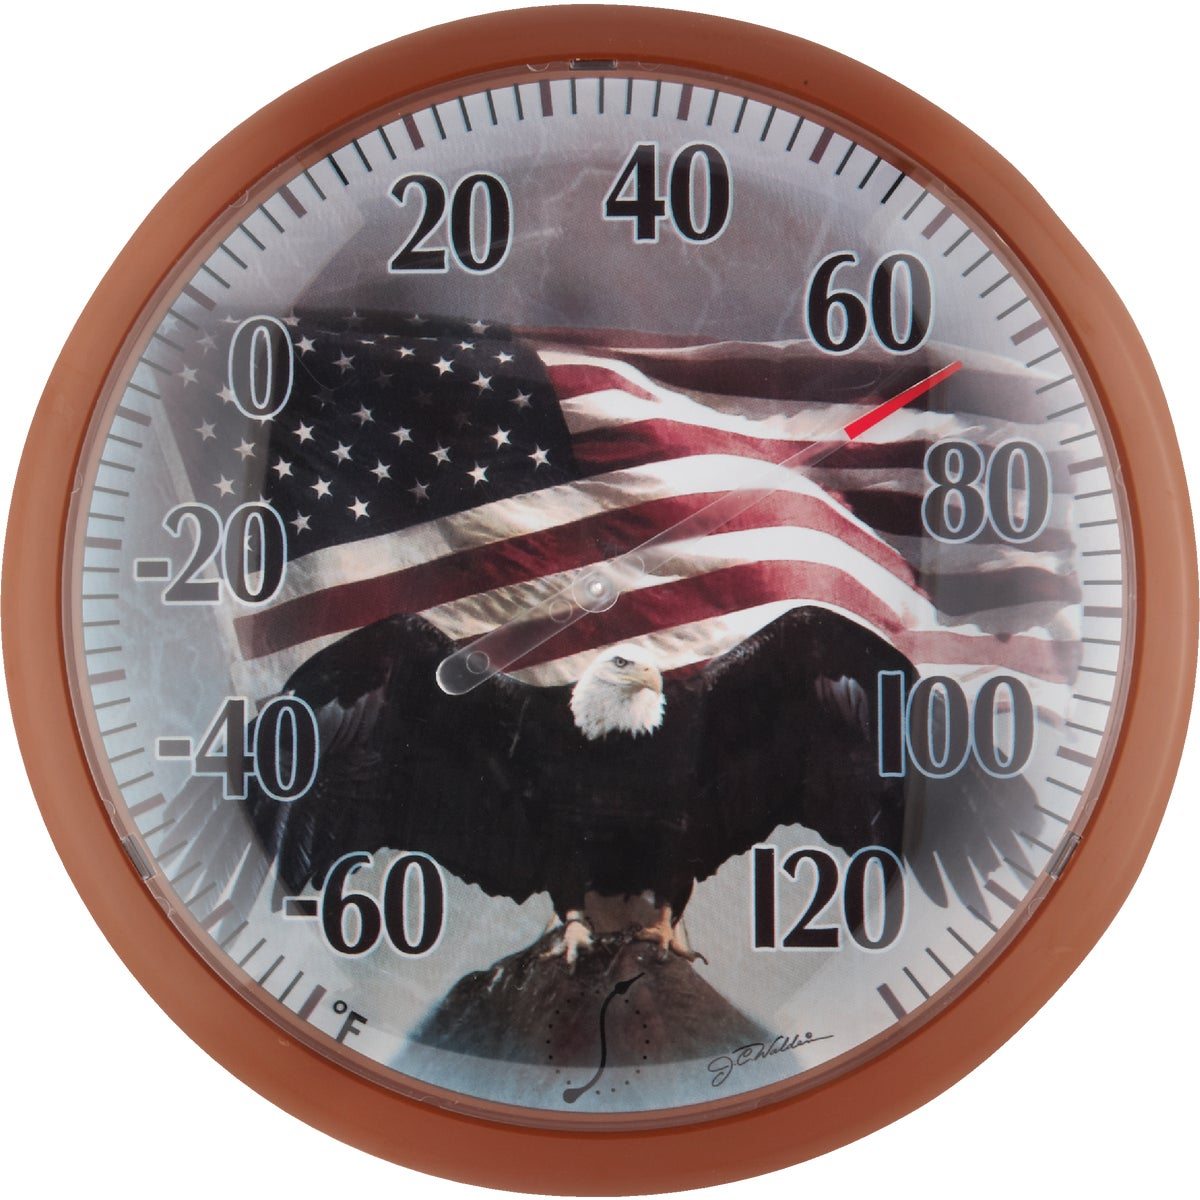 FLAG DIAL THERMOMETER